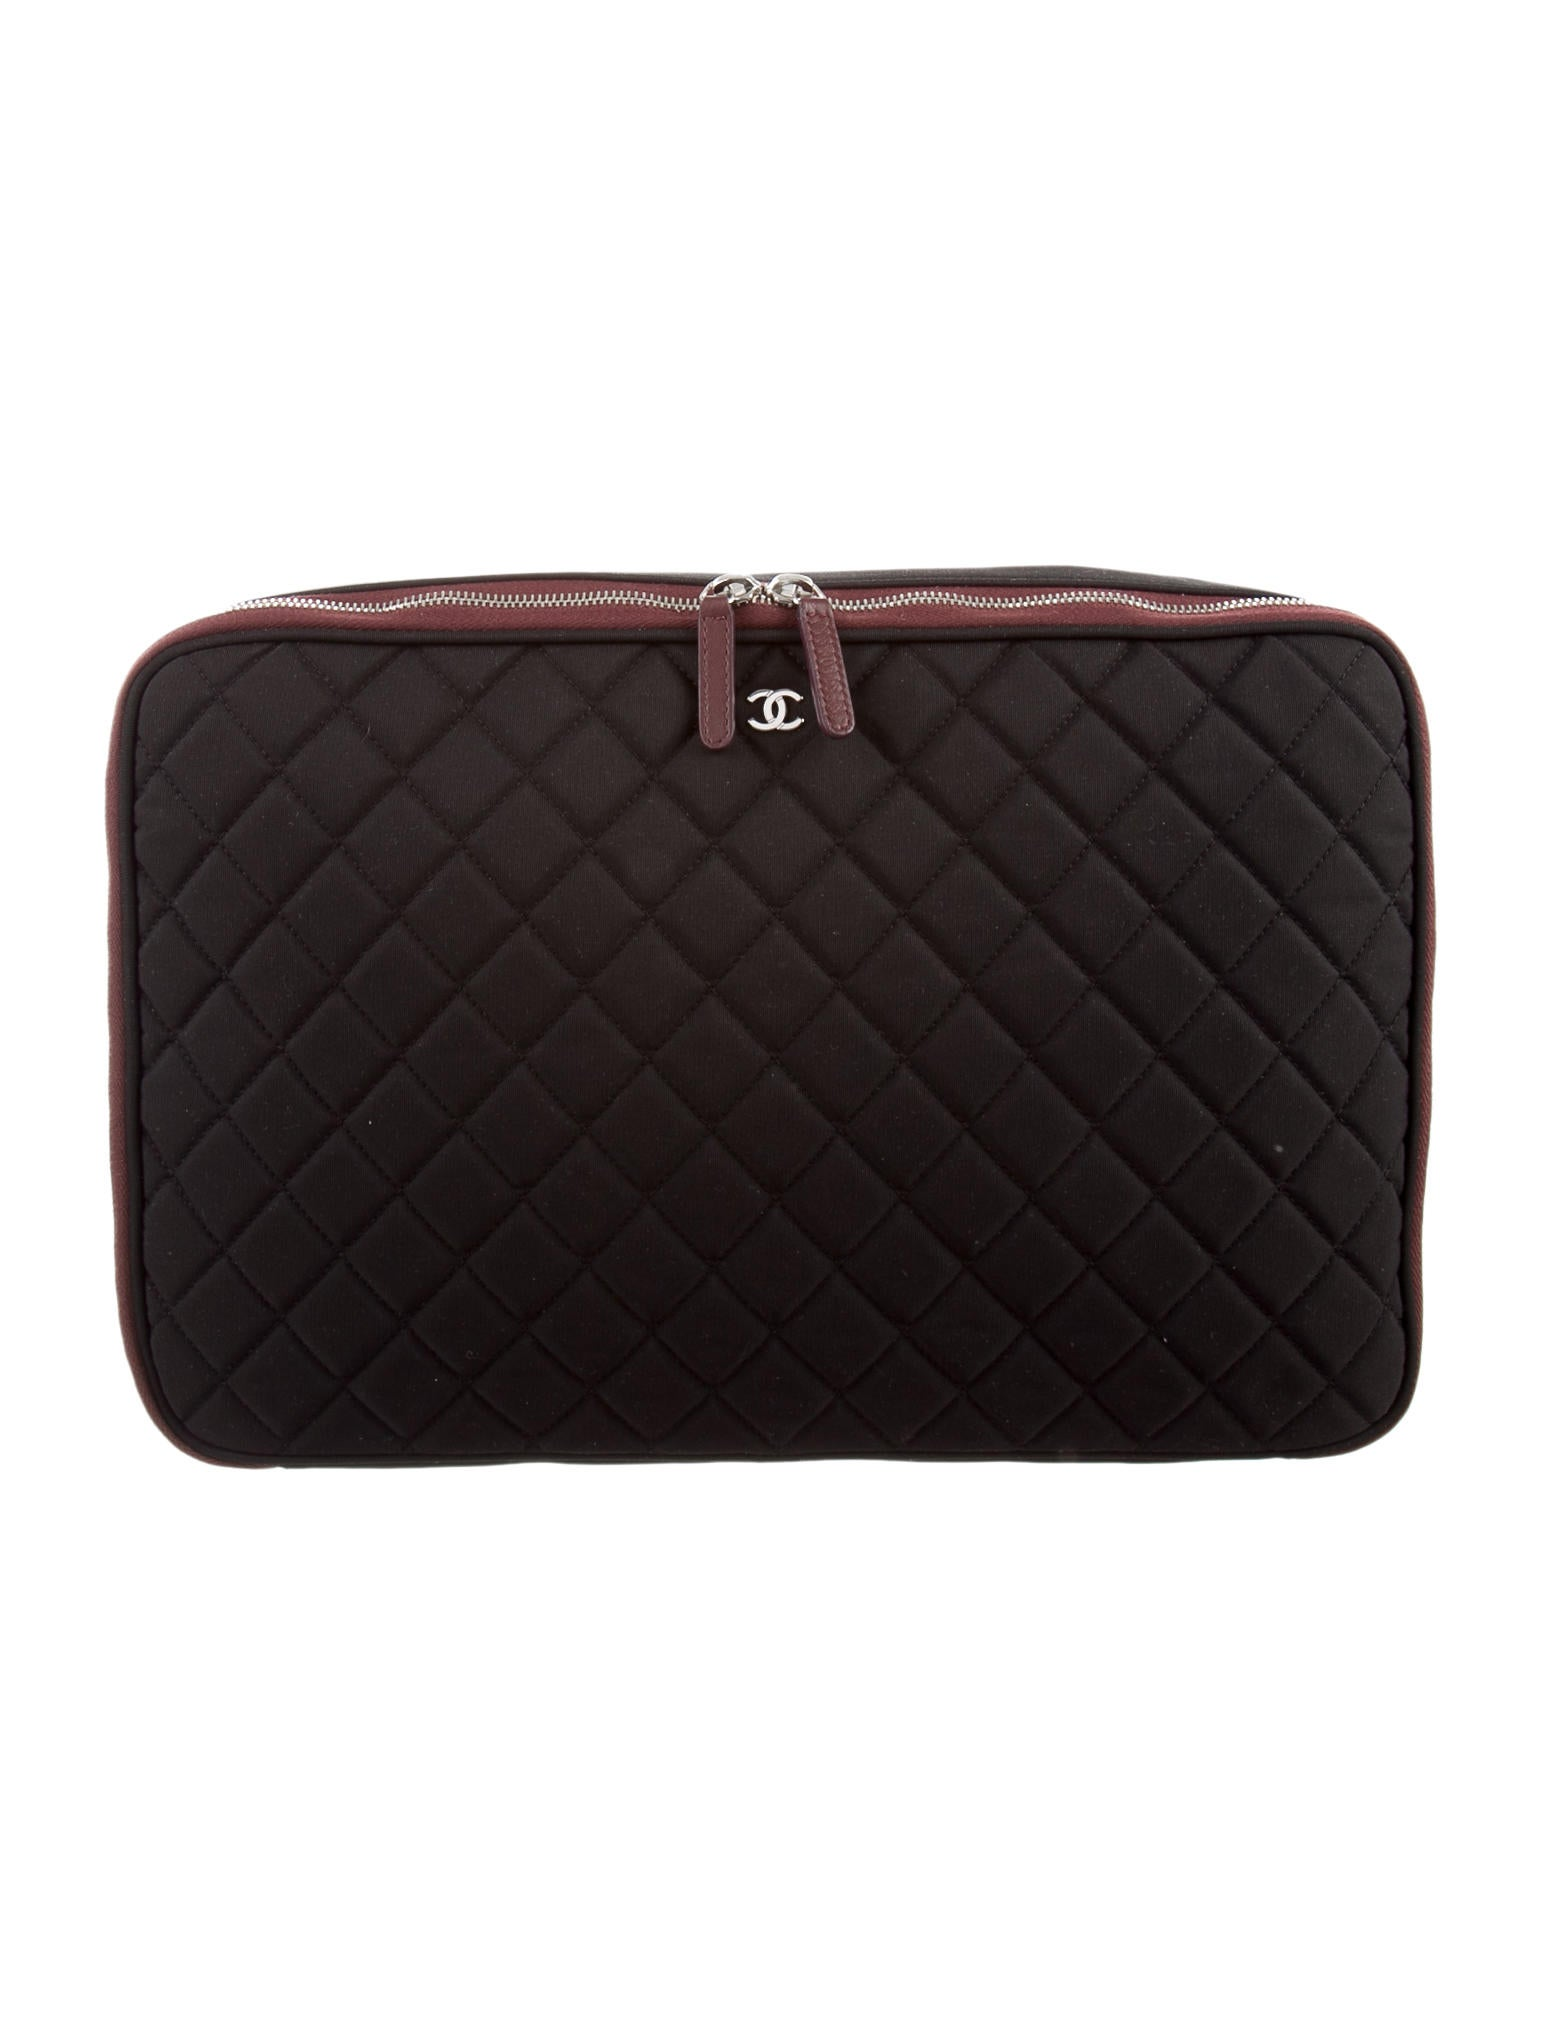 Chanel Quilted Laptop Case - Accessories - CHA144222 | The ...